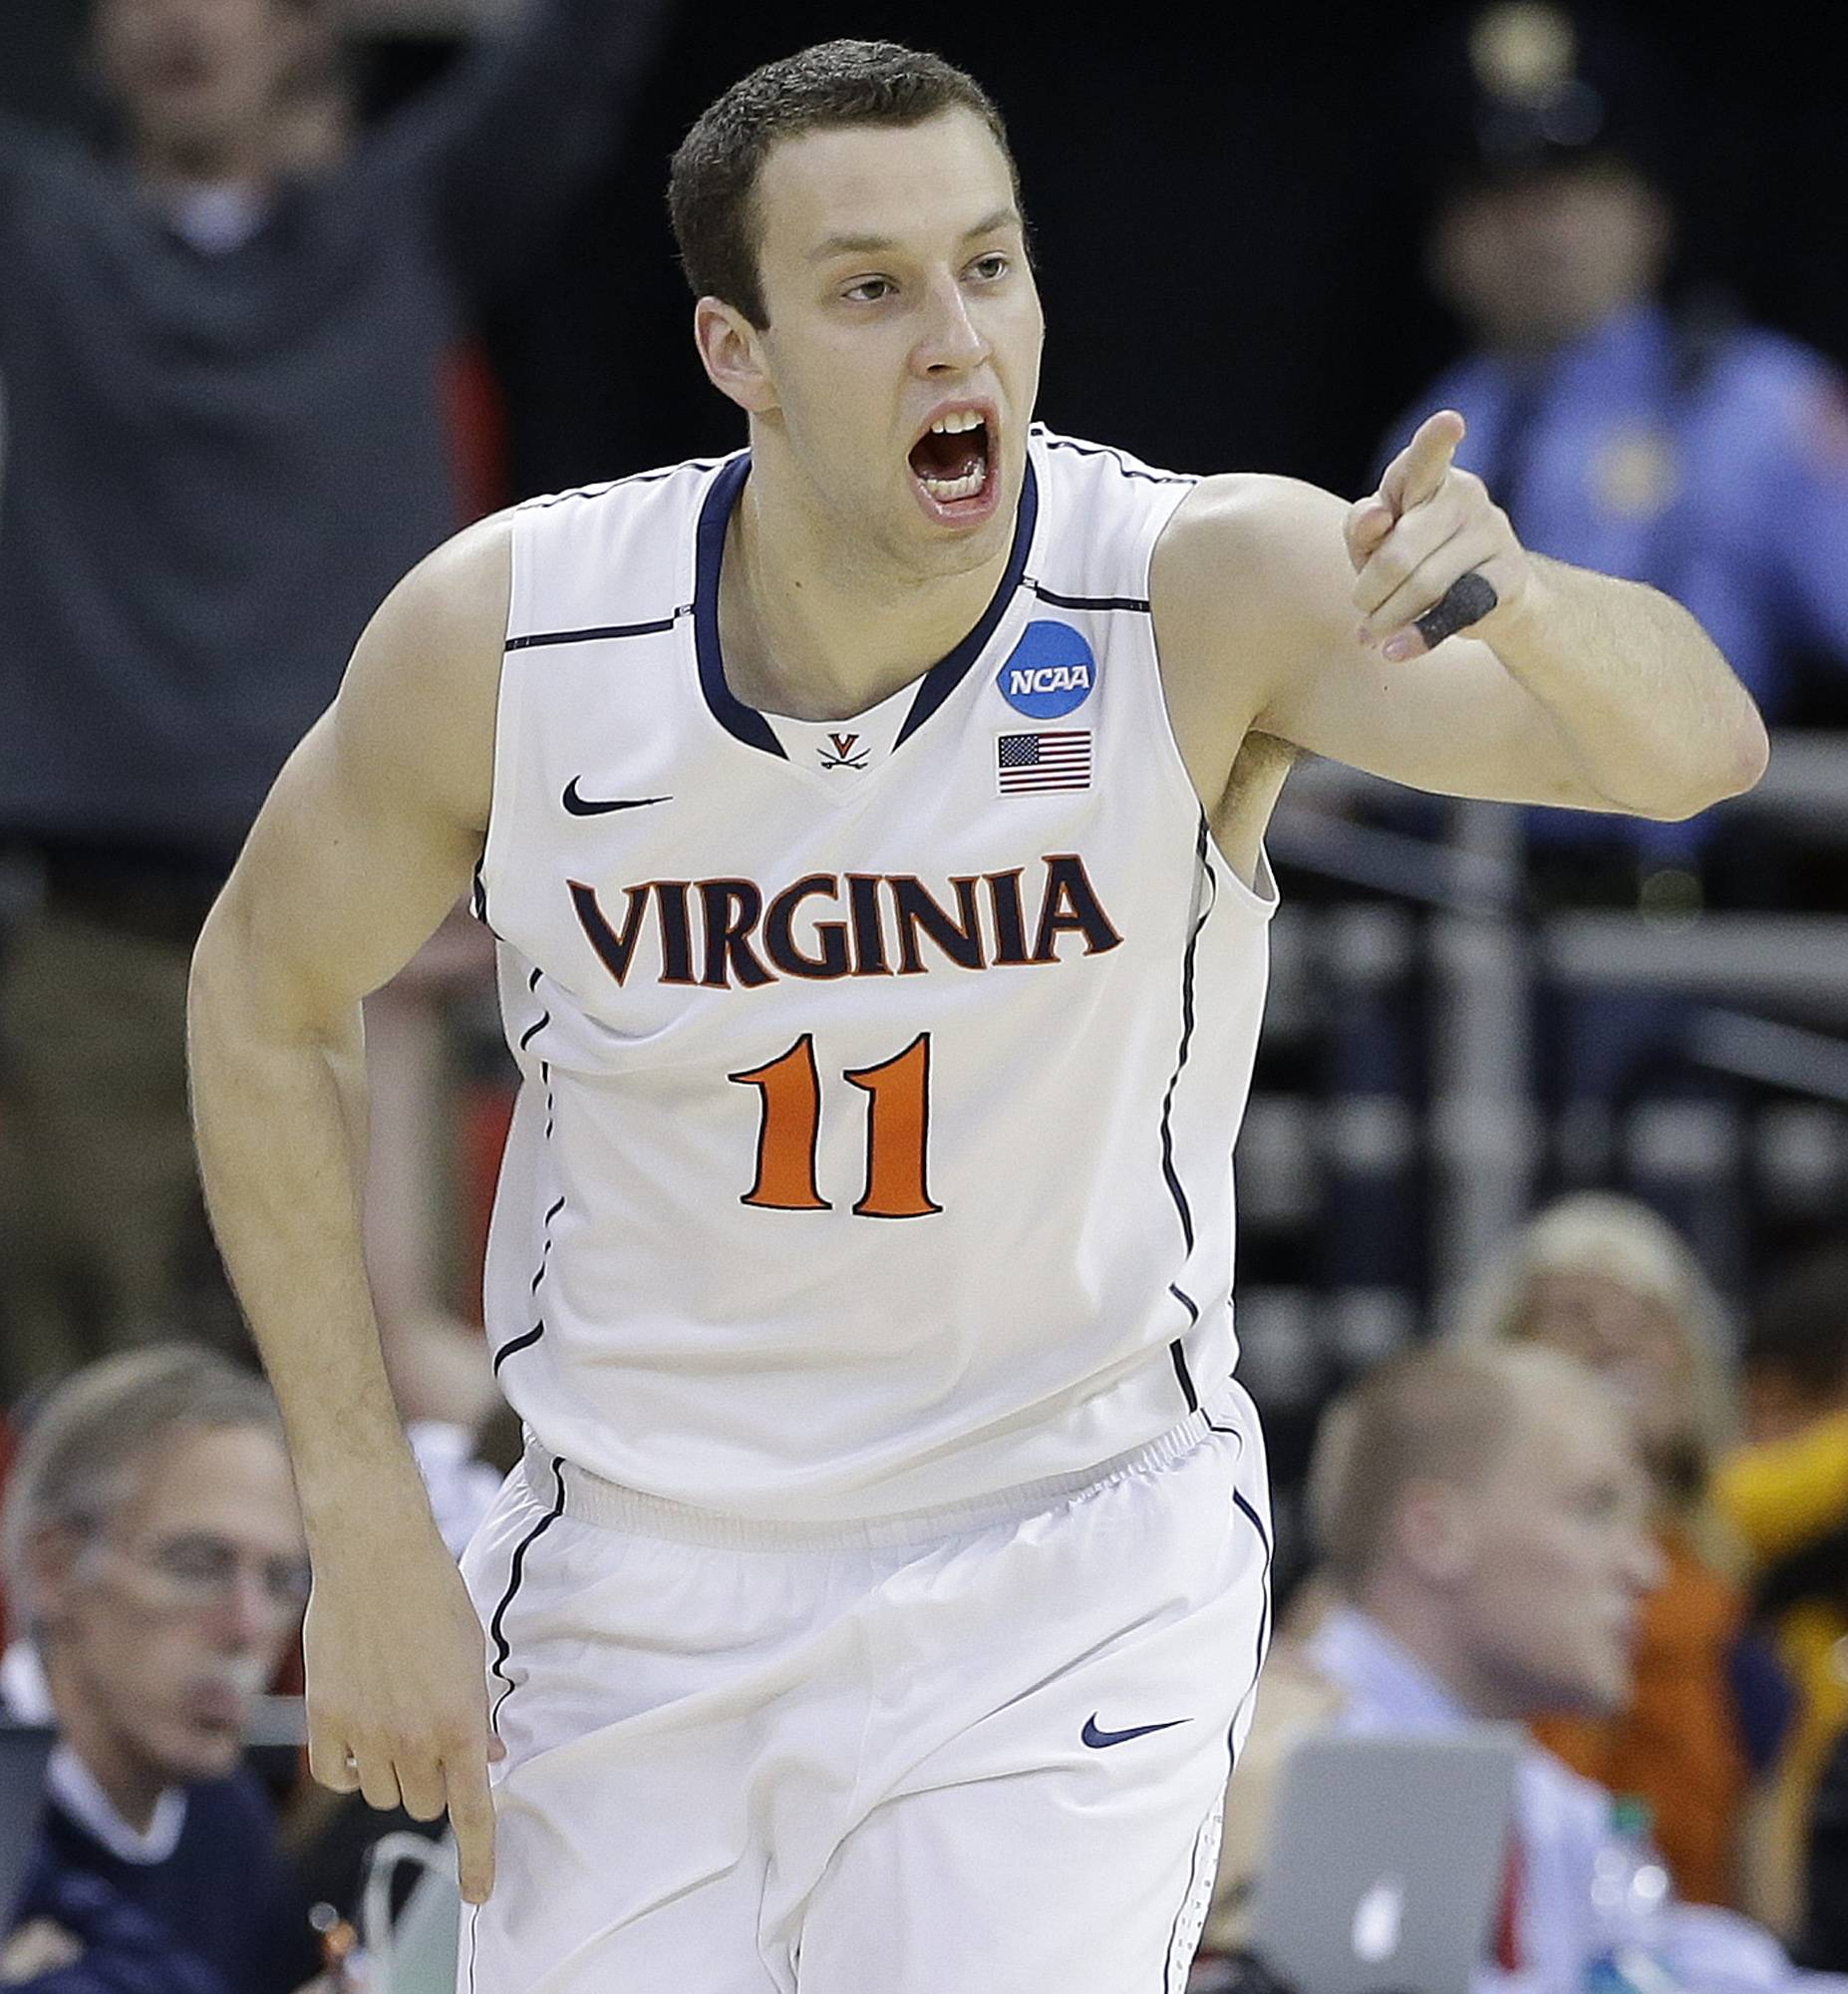 Virginia forward Evan Nolte celebrates a basket against Coastal Carolina during the second half of an NCAA tournament game Friday in Raleigh.